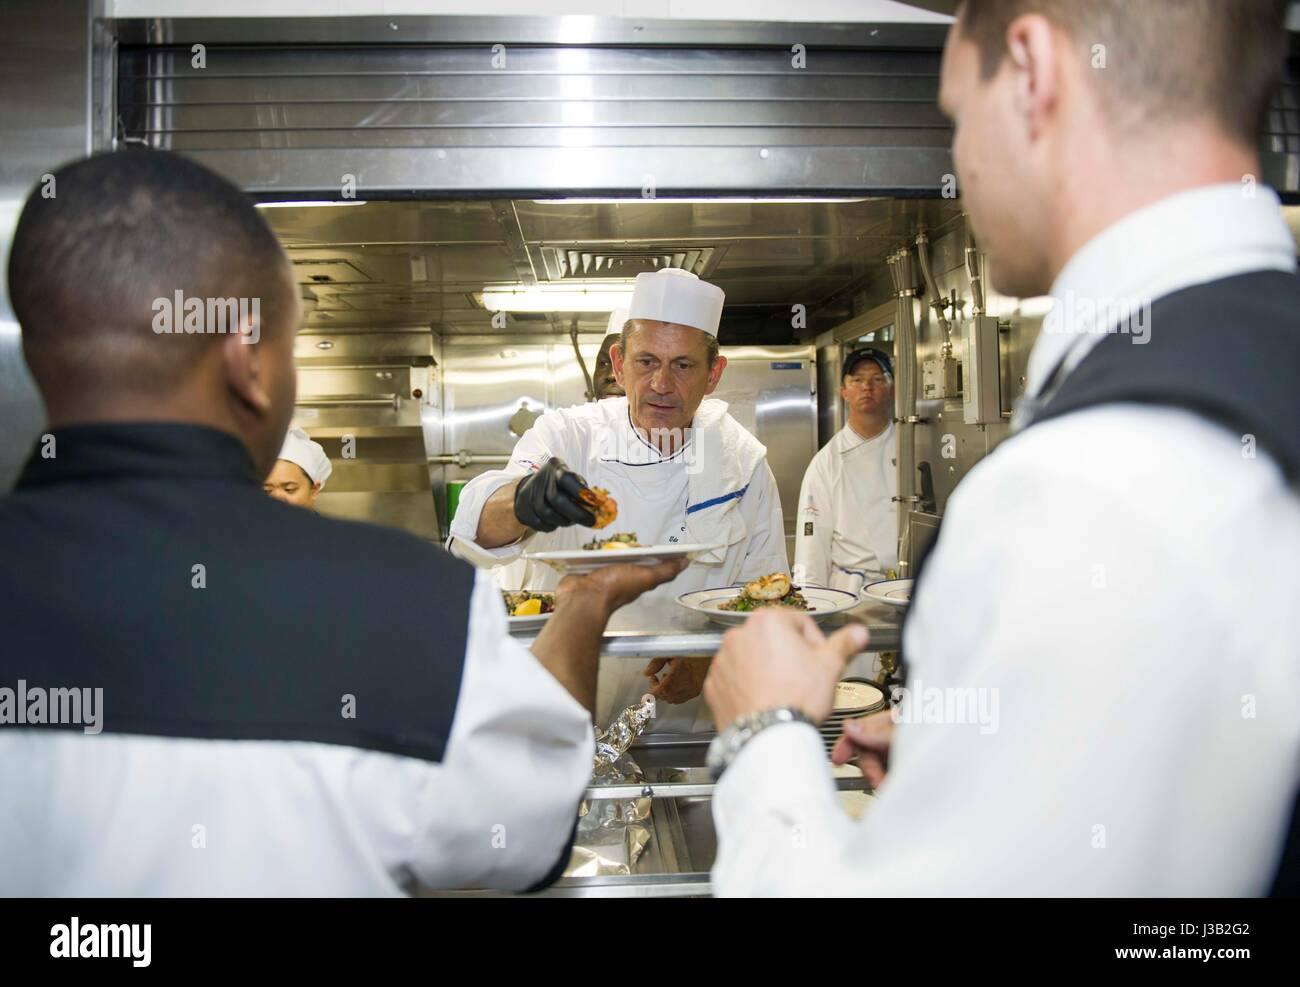 Celebrity Chef Udo Mueller, center, alongside U.S. Navy sailors prepare lunch aboard the amphibious landing dock - Stock Image